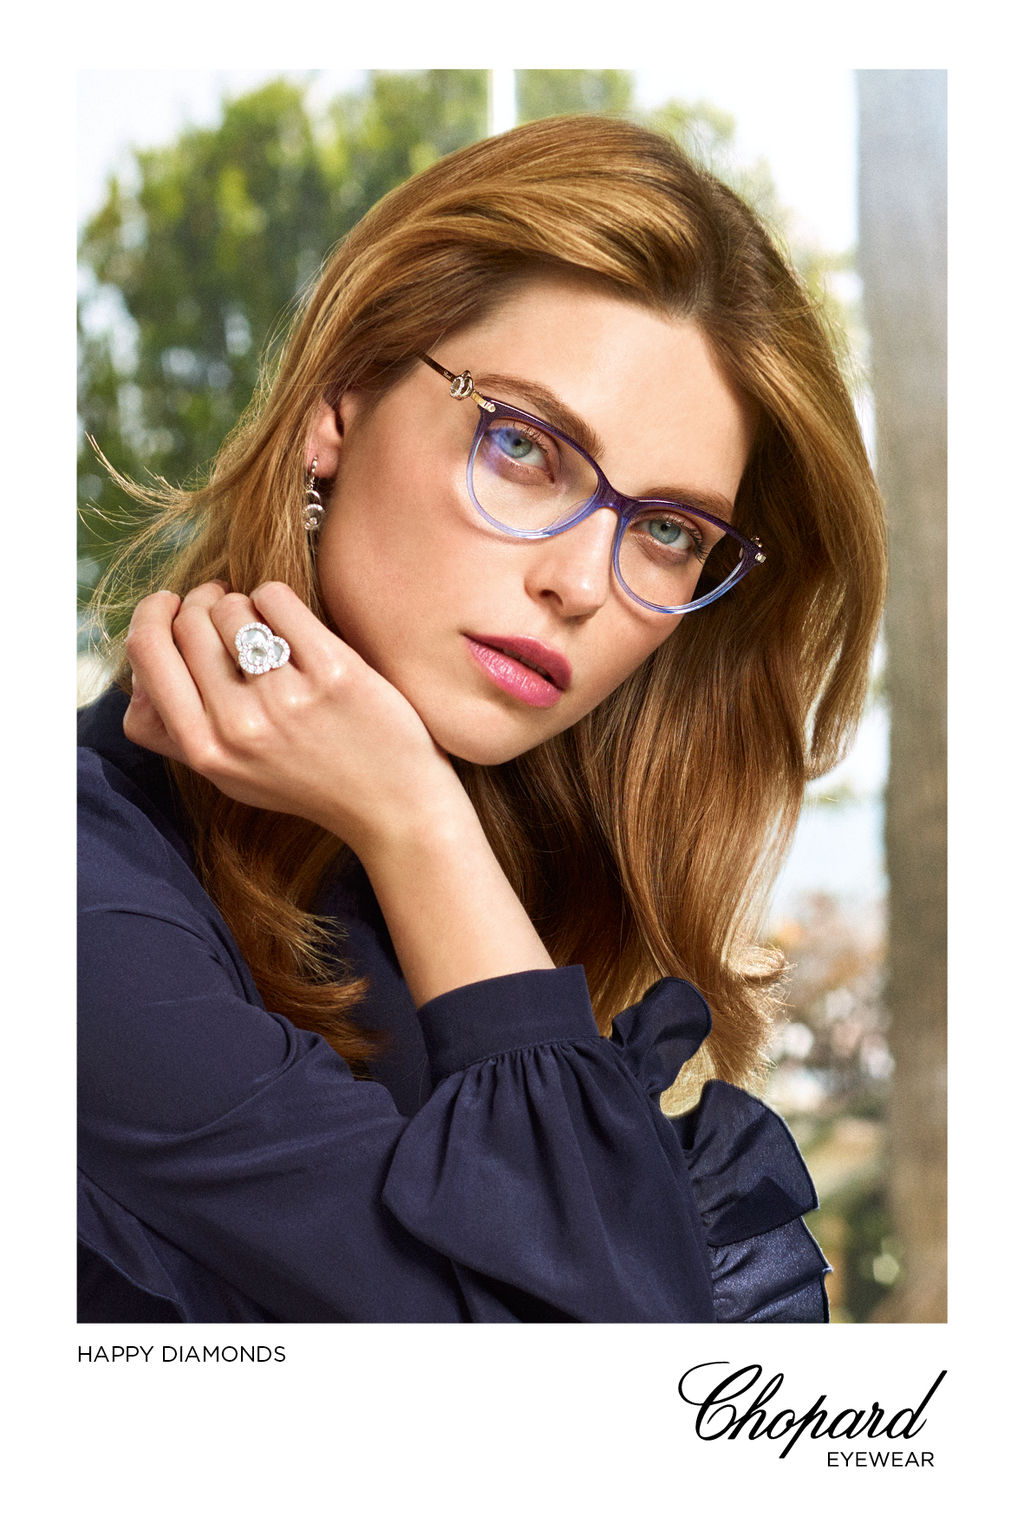 Chopard available at Whitehouse Optometrists in Sydney and in St. Leonards